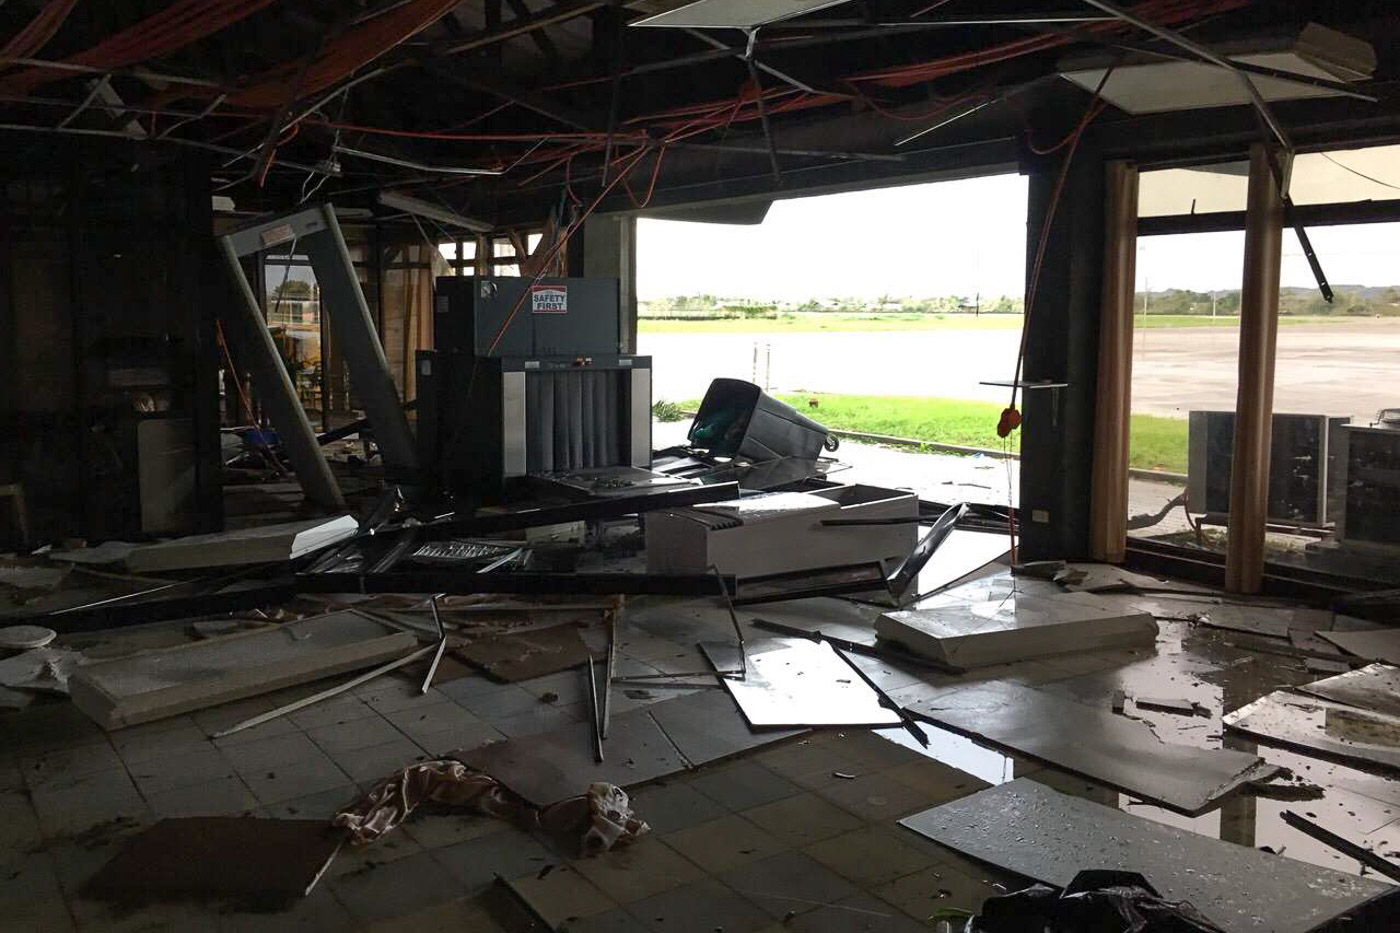 BATTERED. The Tuguegarao Airport is extensively damaged during the onslaught of Typhoon Ompong on September 15, 2018. Photo by Asec Giovanni Lopez/DOTr